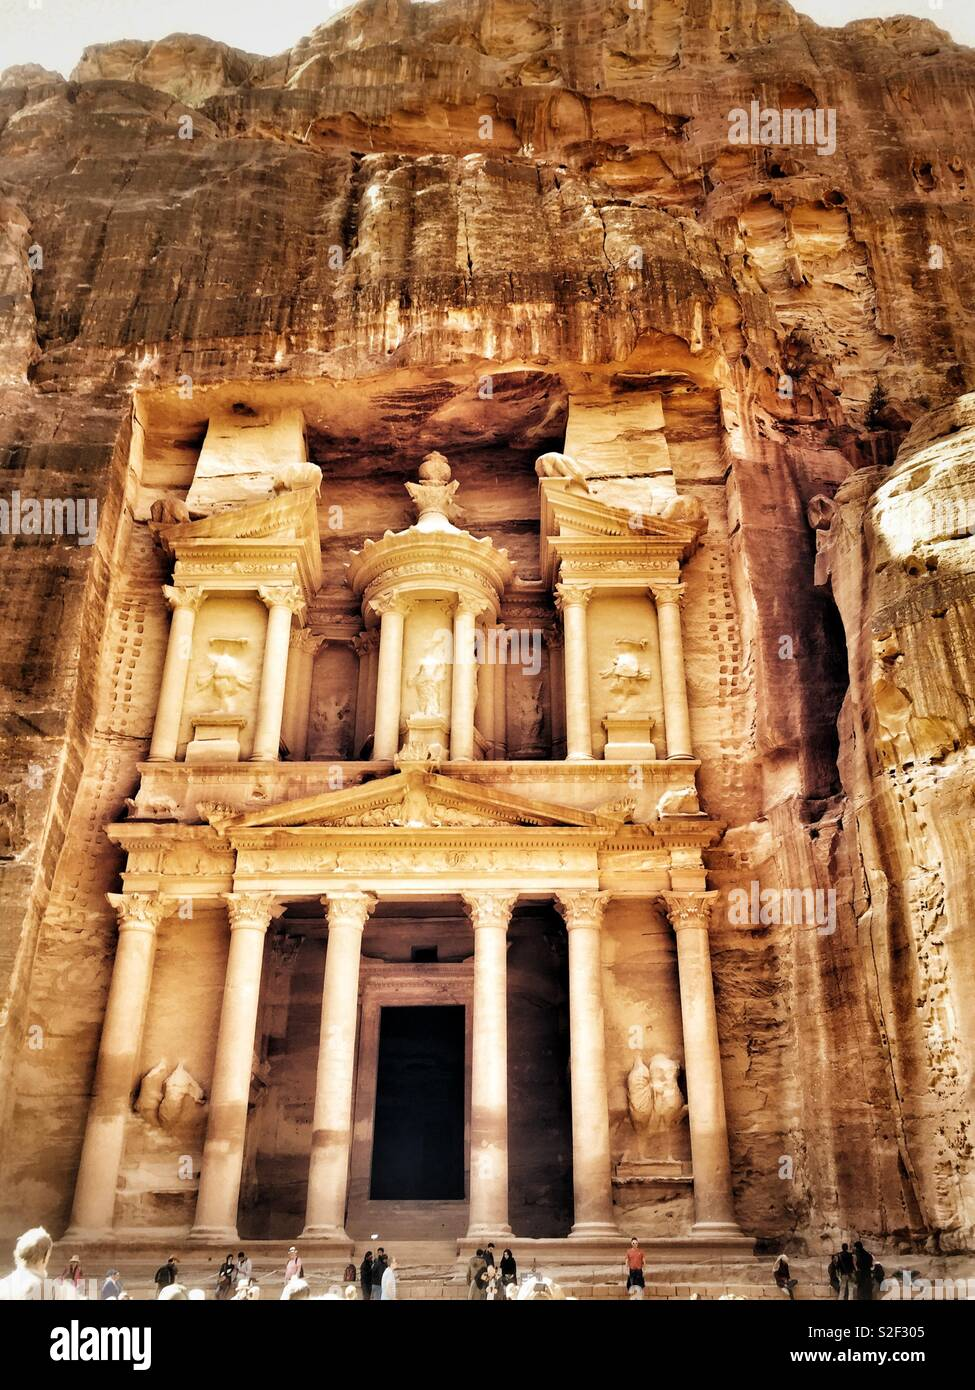 The Treasury, Petra, Jordan. The Rose Red City carved by the Ancient Nabataeans. - Stock Image